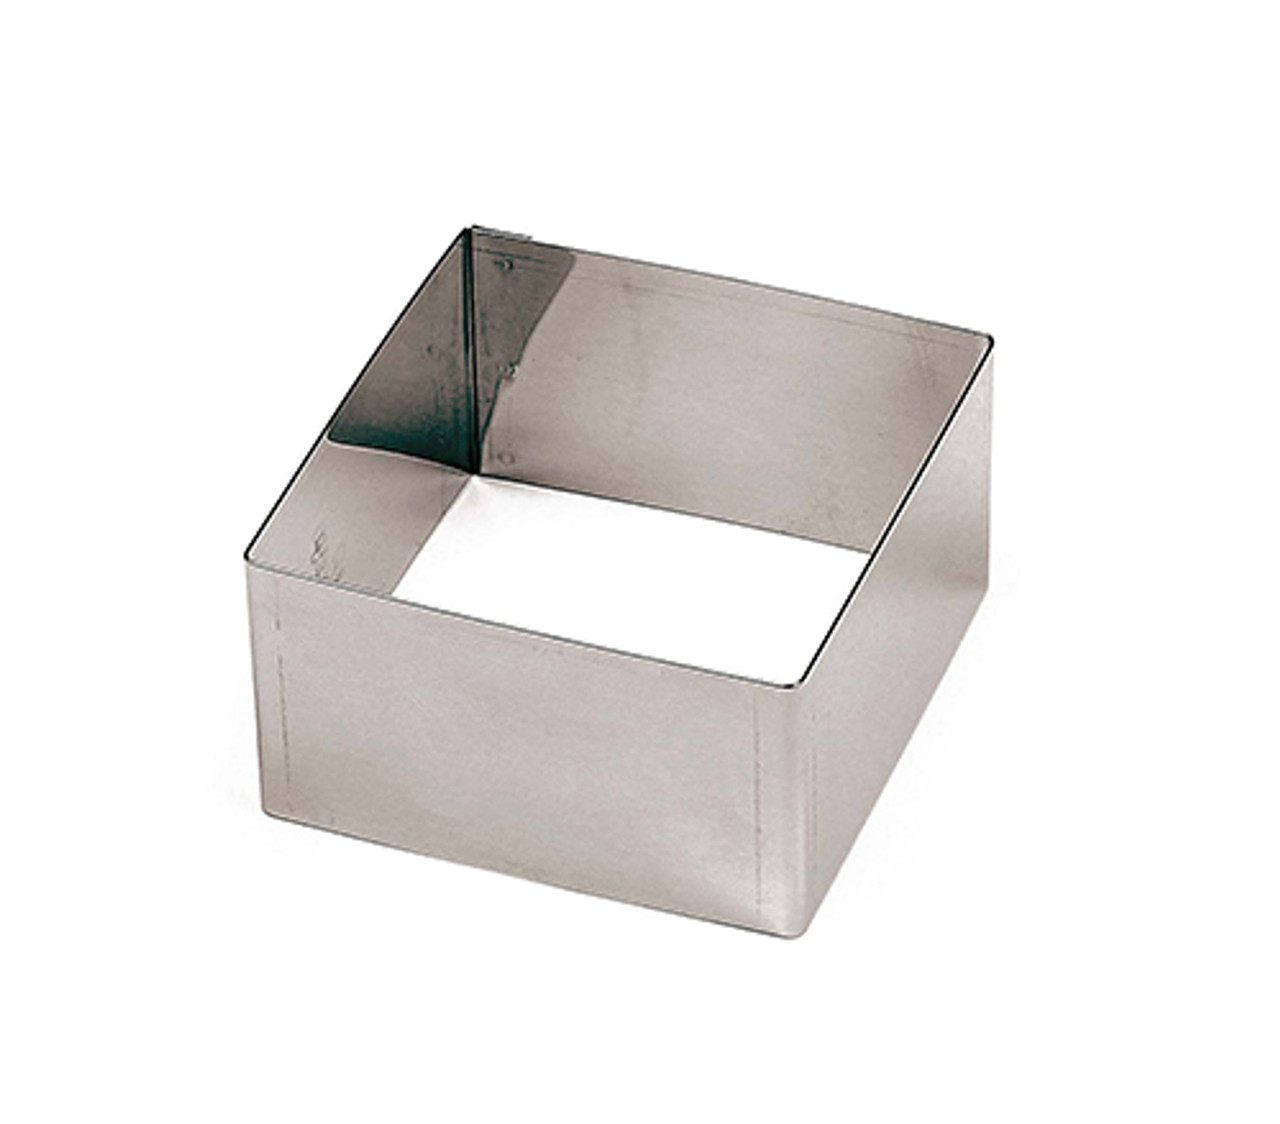 x6 Rounded-Edge Square S/S Pastry Rings - 3 1/8, L 3.125 x W 3.125 x H 1.75